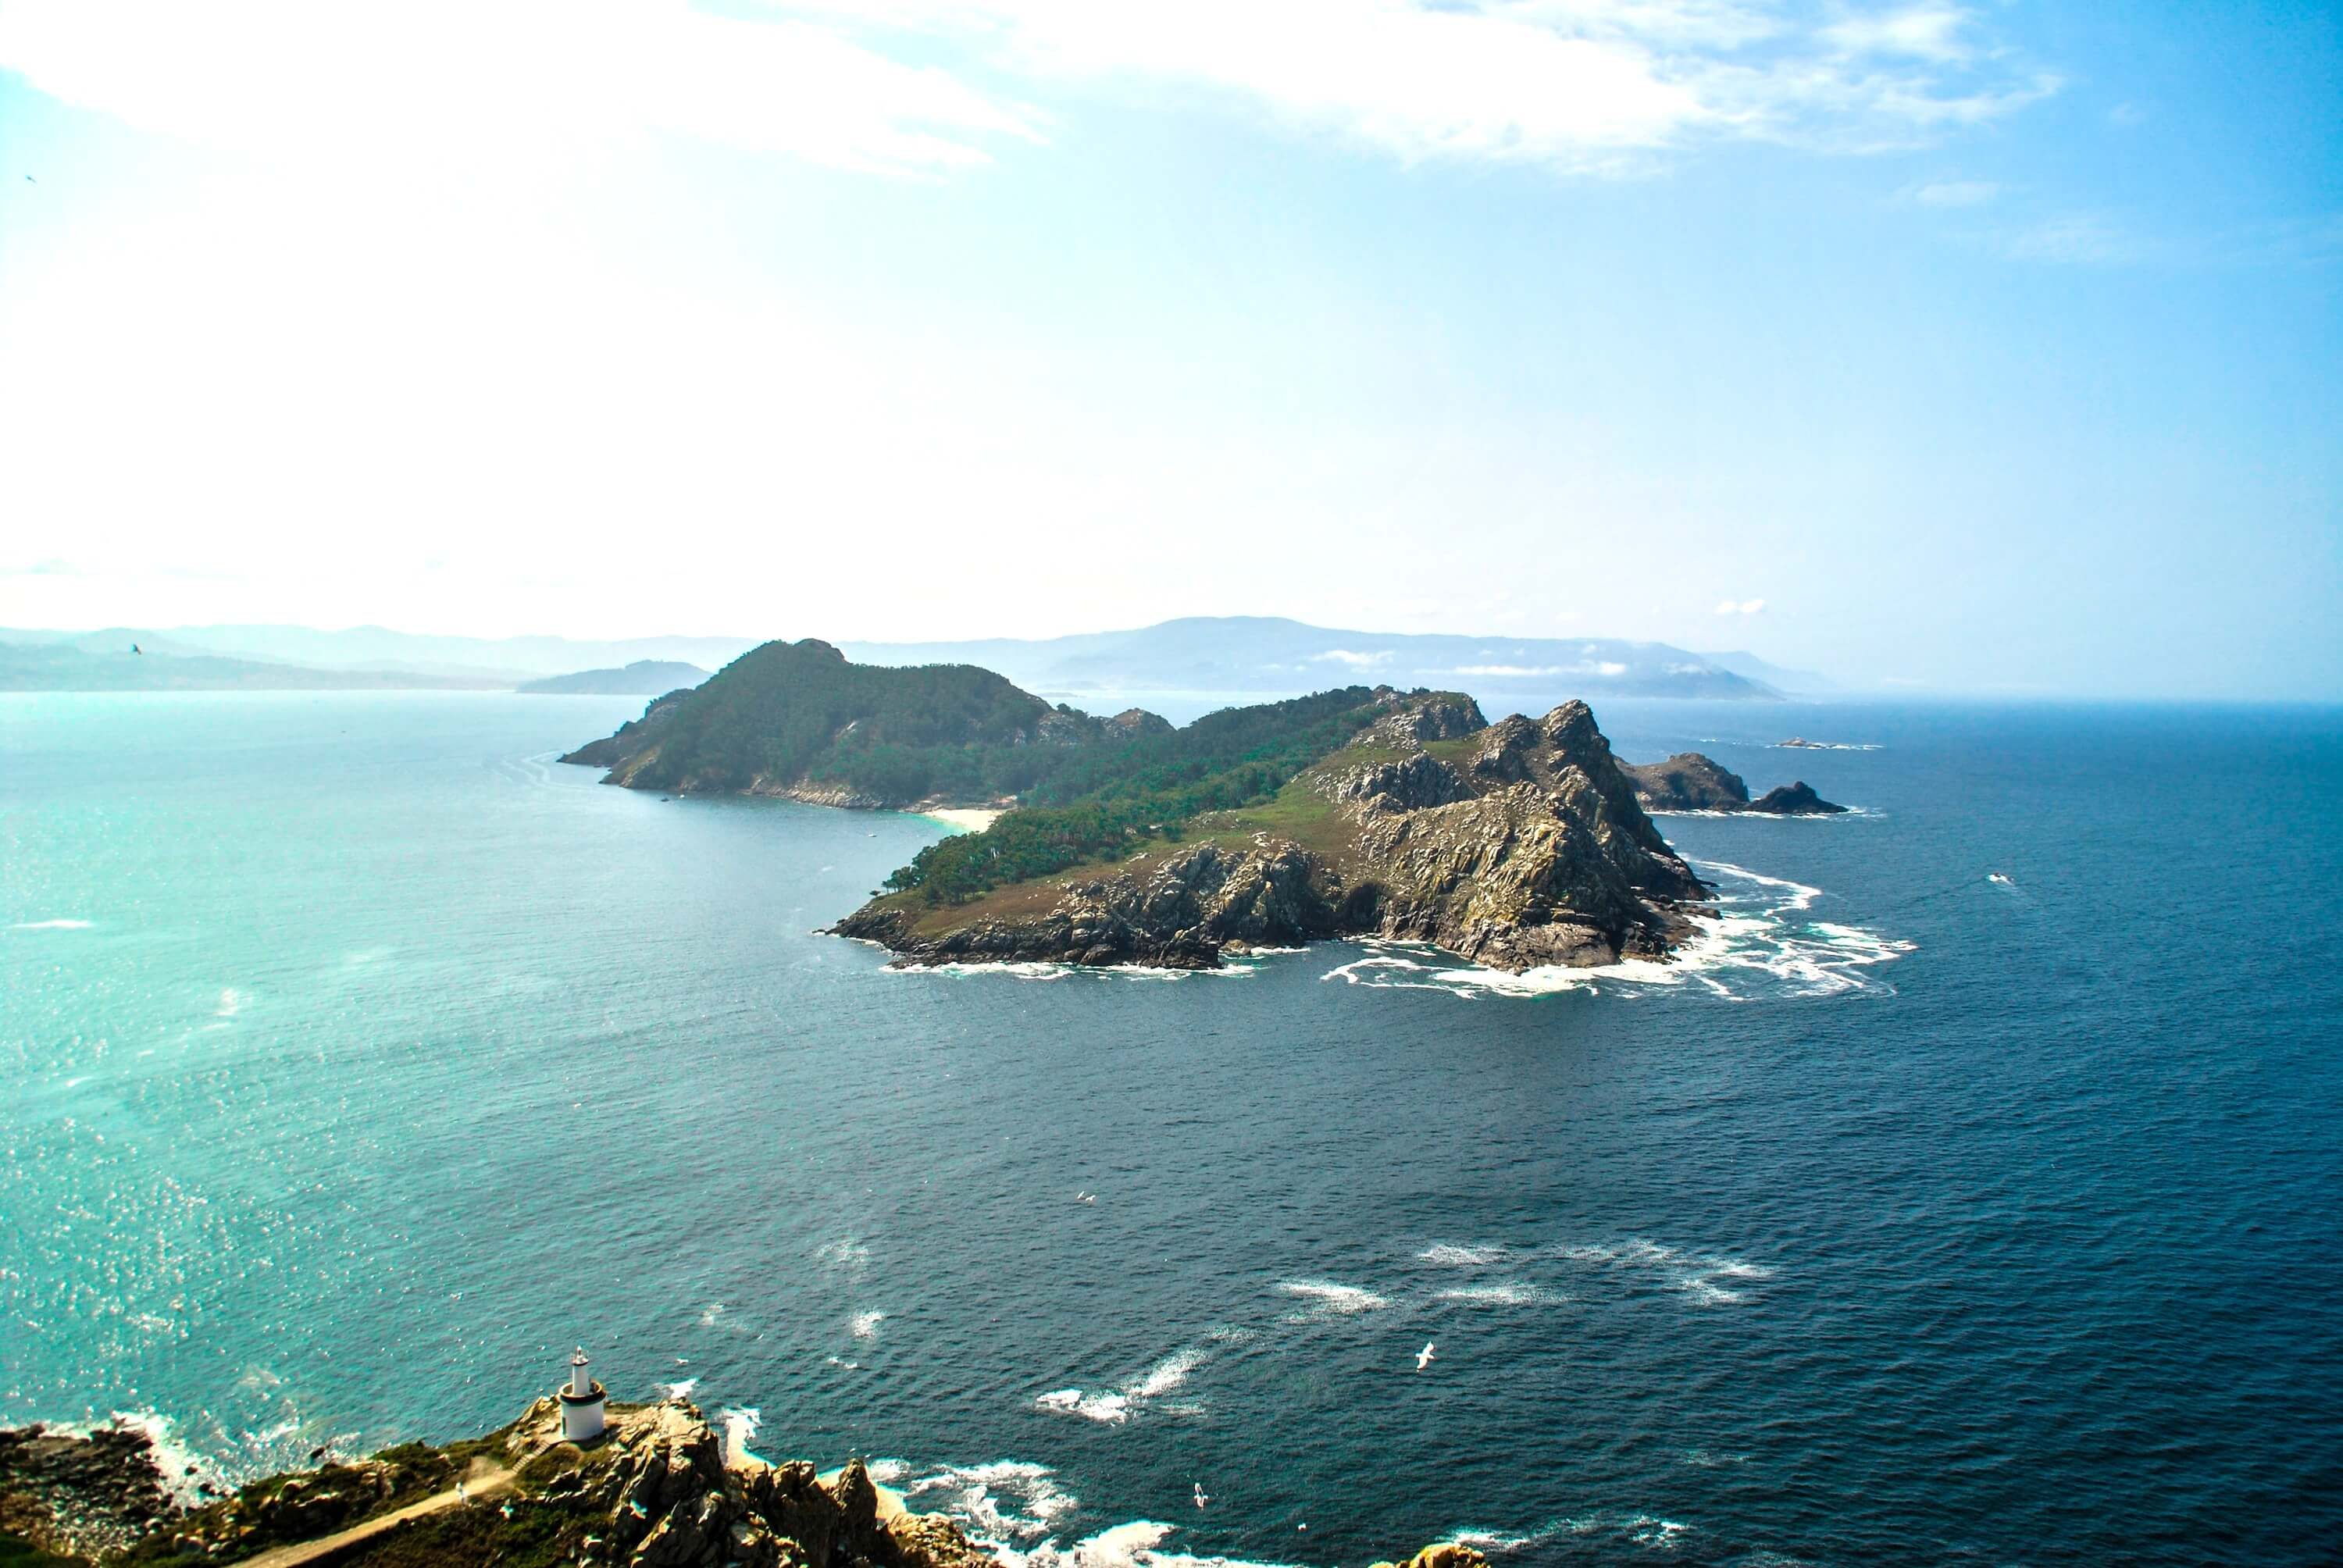 20 Photos to Inspire You to Visit the Cies Islands - Galicia Spain Travel Aerial View of Cies Islands